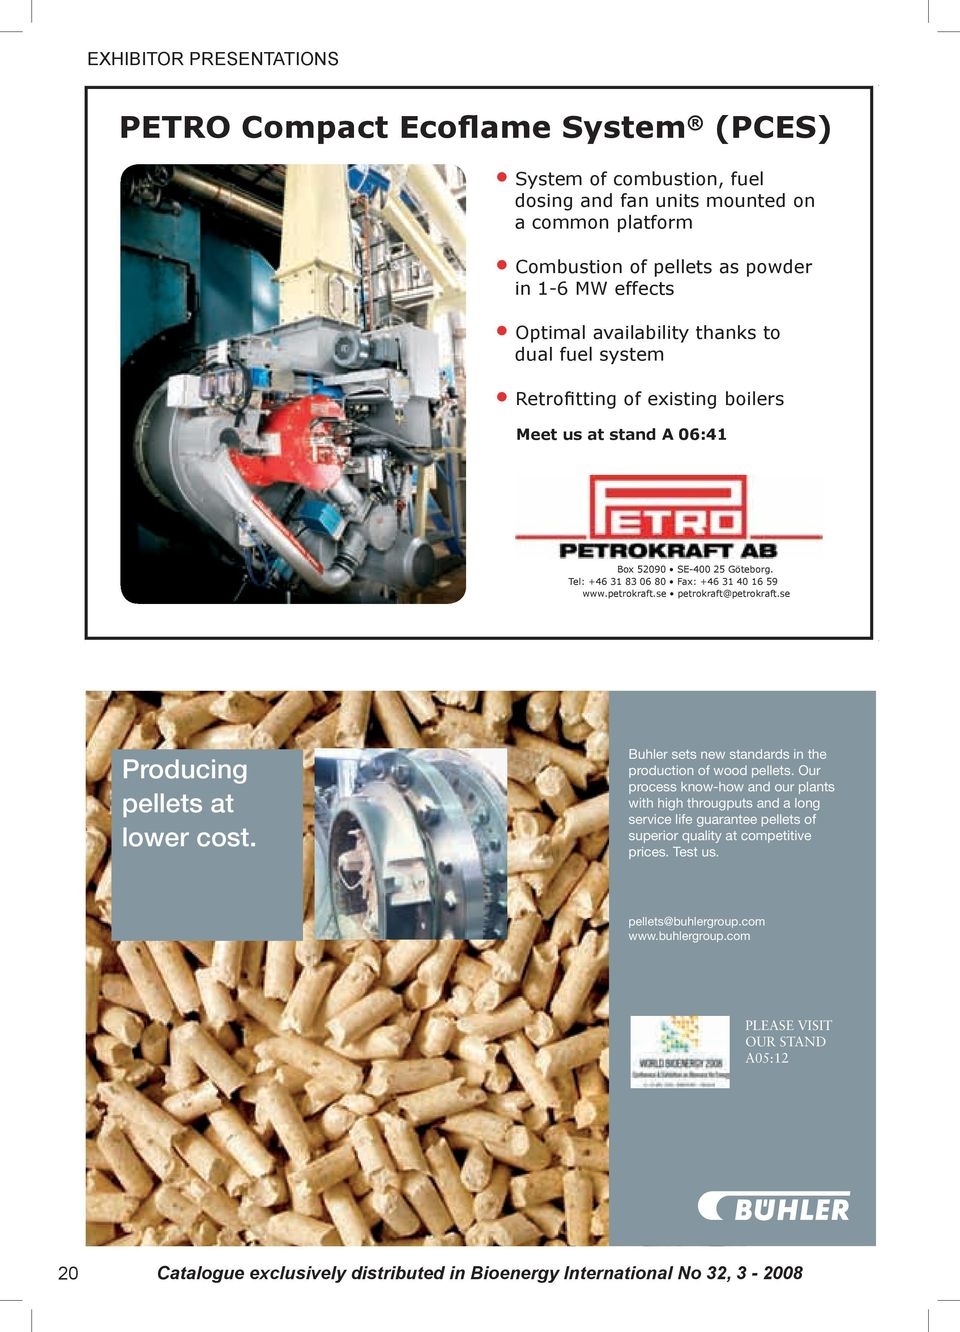 se petrokraft@petrokraft.se Petro annons.indd 4 08-04-17 11.30.21 Producing pellets at lower cost. Buhler sets new standards in the production of wood pellets.